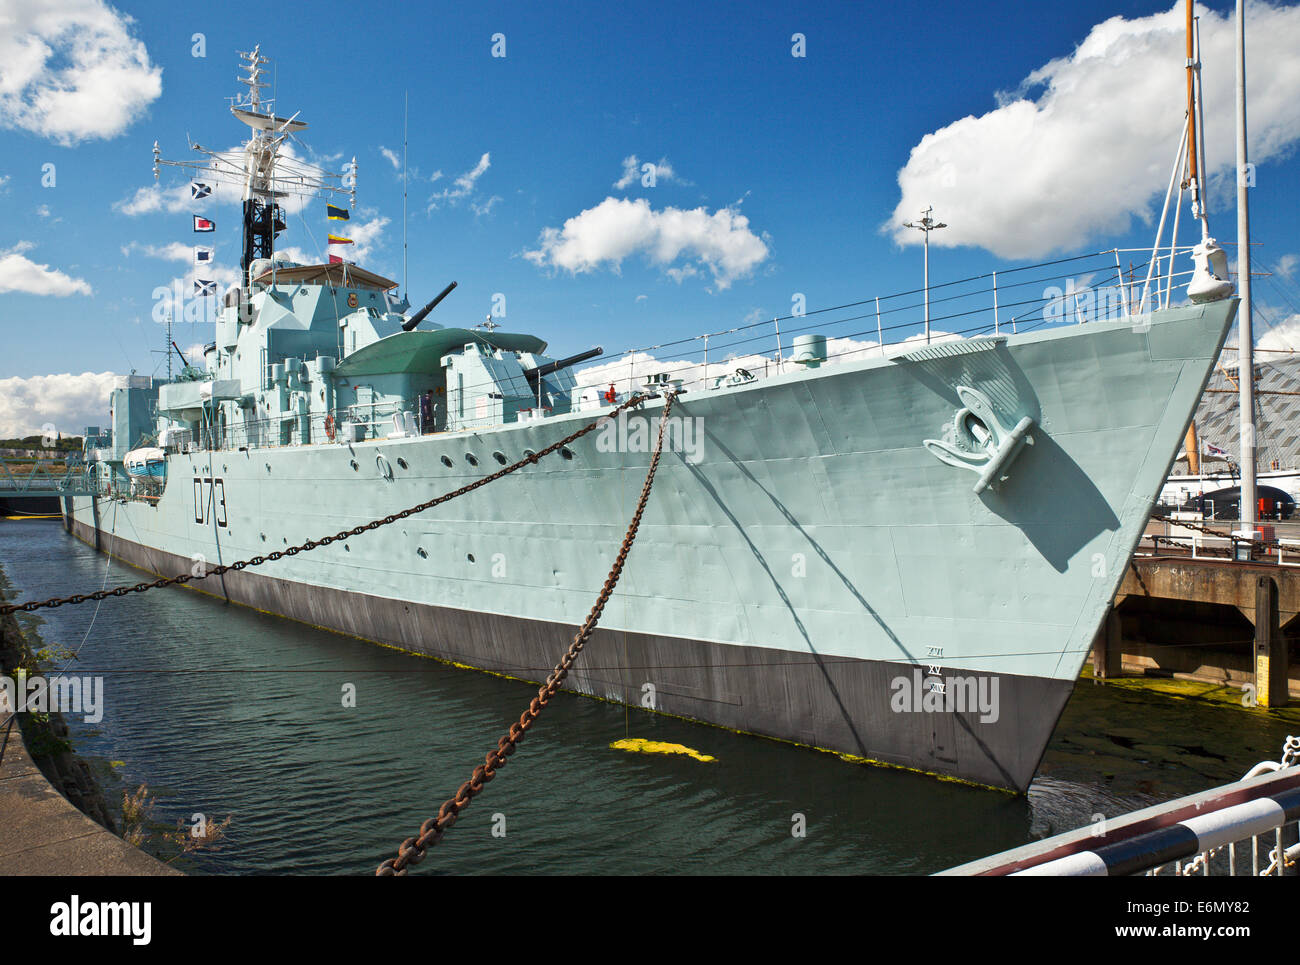 HMS Cavalier. The Royal Navy s last operational Second World War destroyer, at Chatham Historic Dockyard. - Stock Image